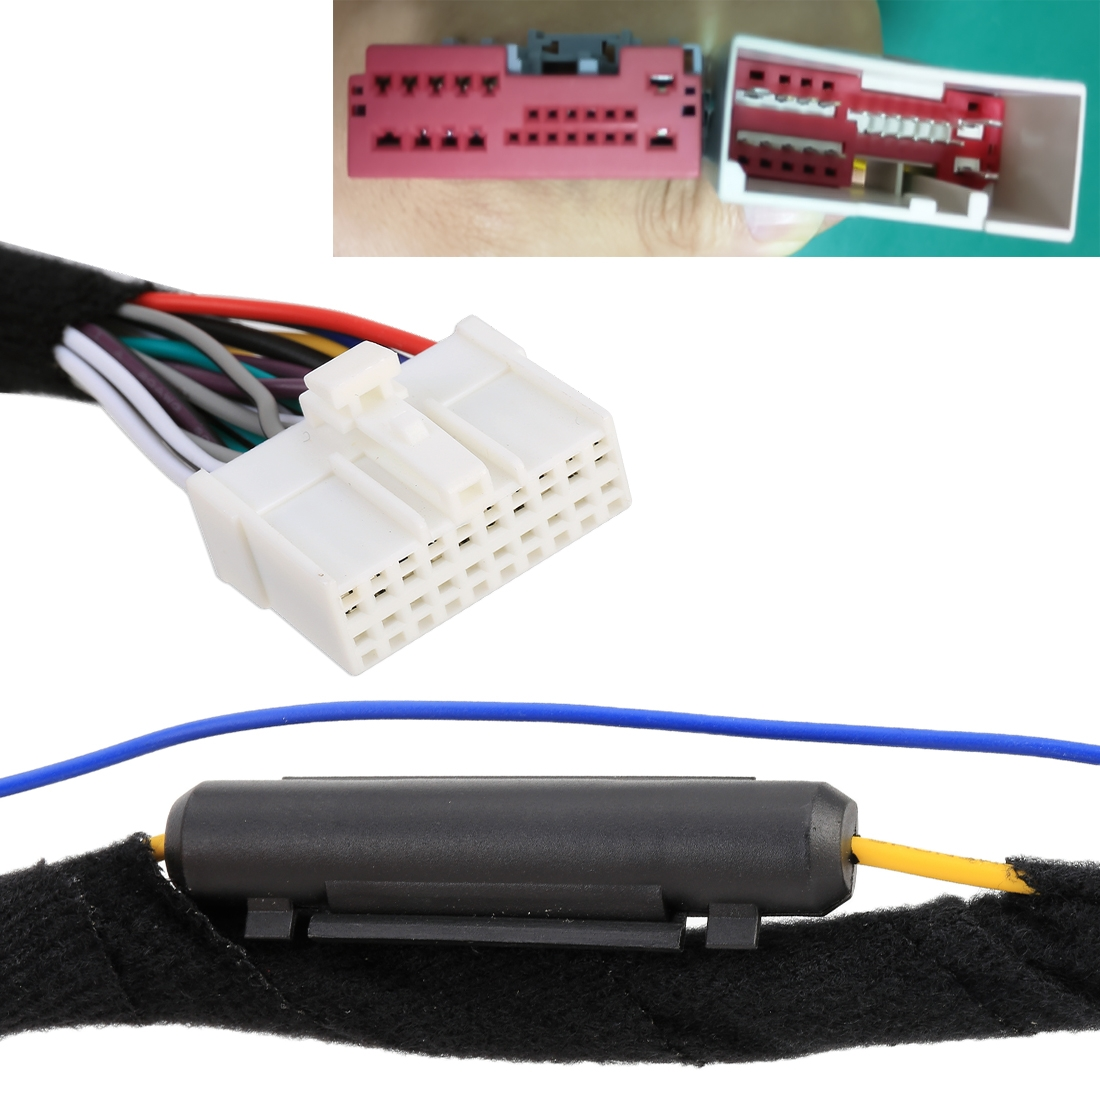 AXCTC For Buick No.59 DSP-3.0 Stereo Audio Amplifier Car Audio DSP Processor with Extension Cable Wiring Harness